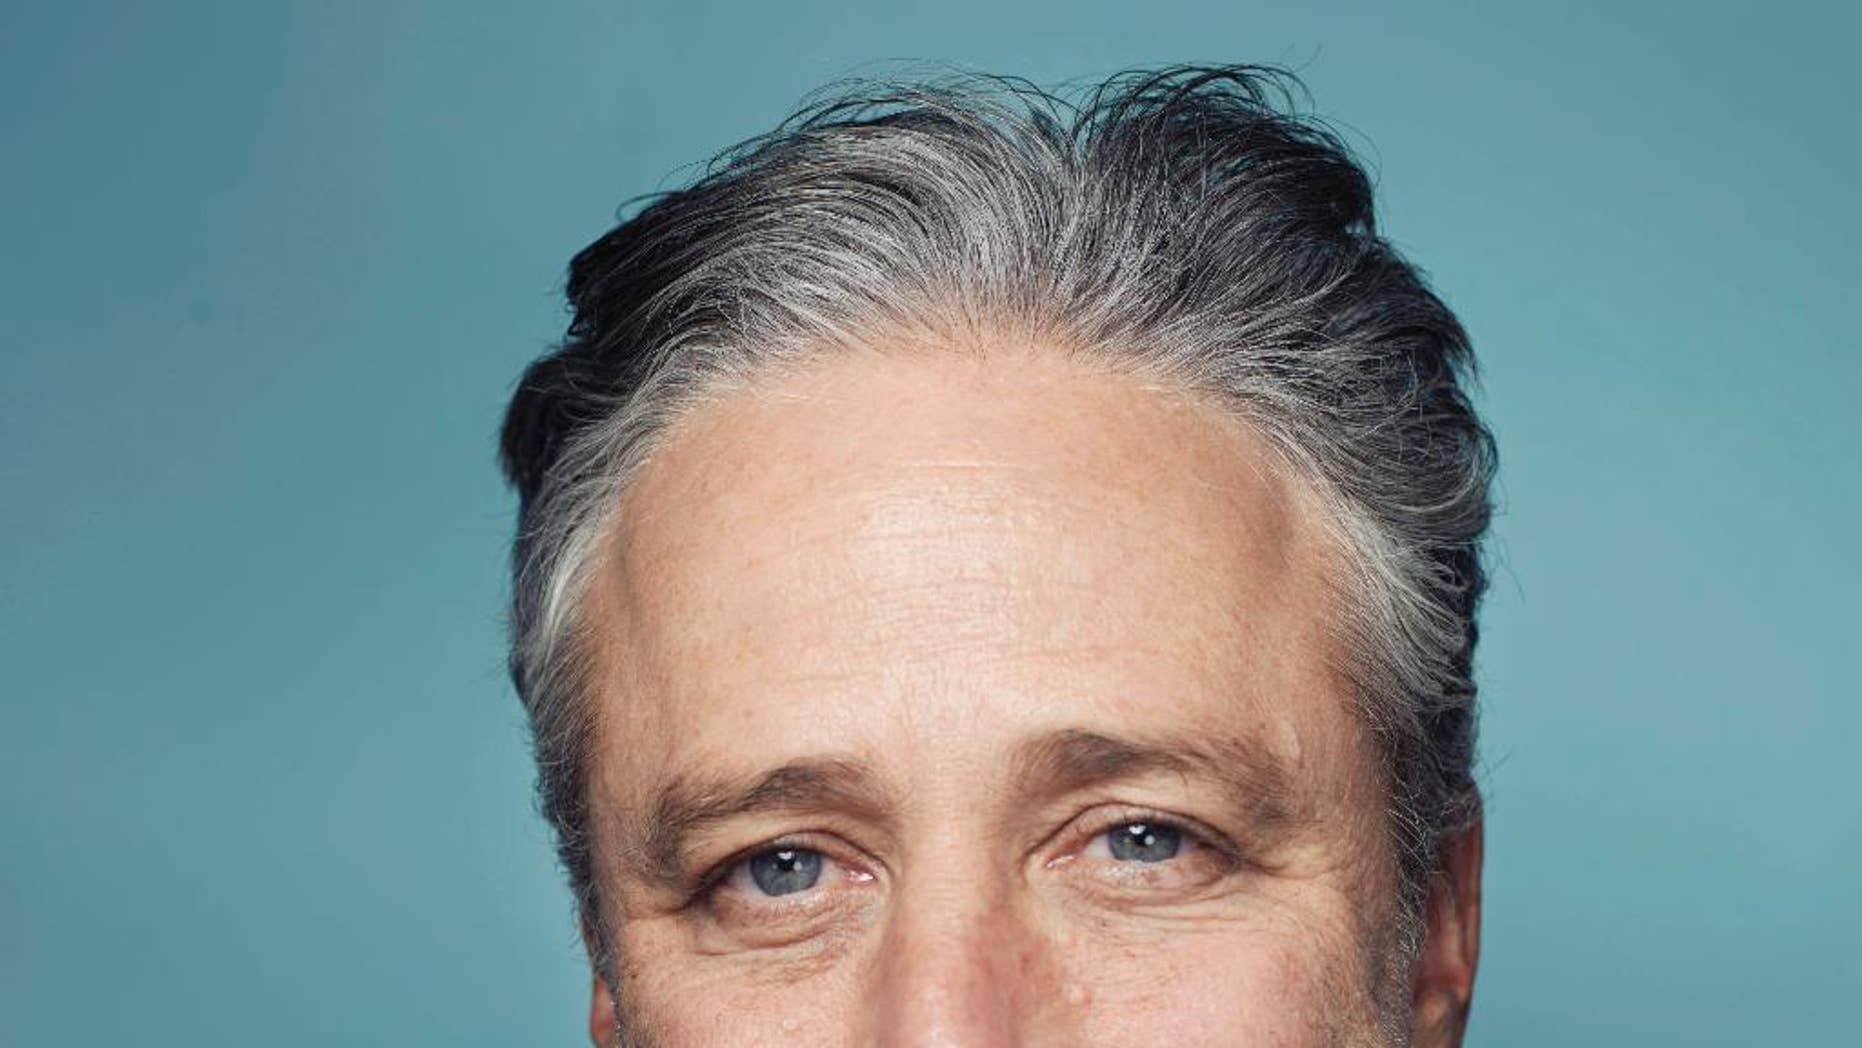 Jon Stewart and his wife adopted an abused horse.